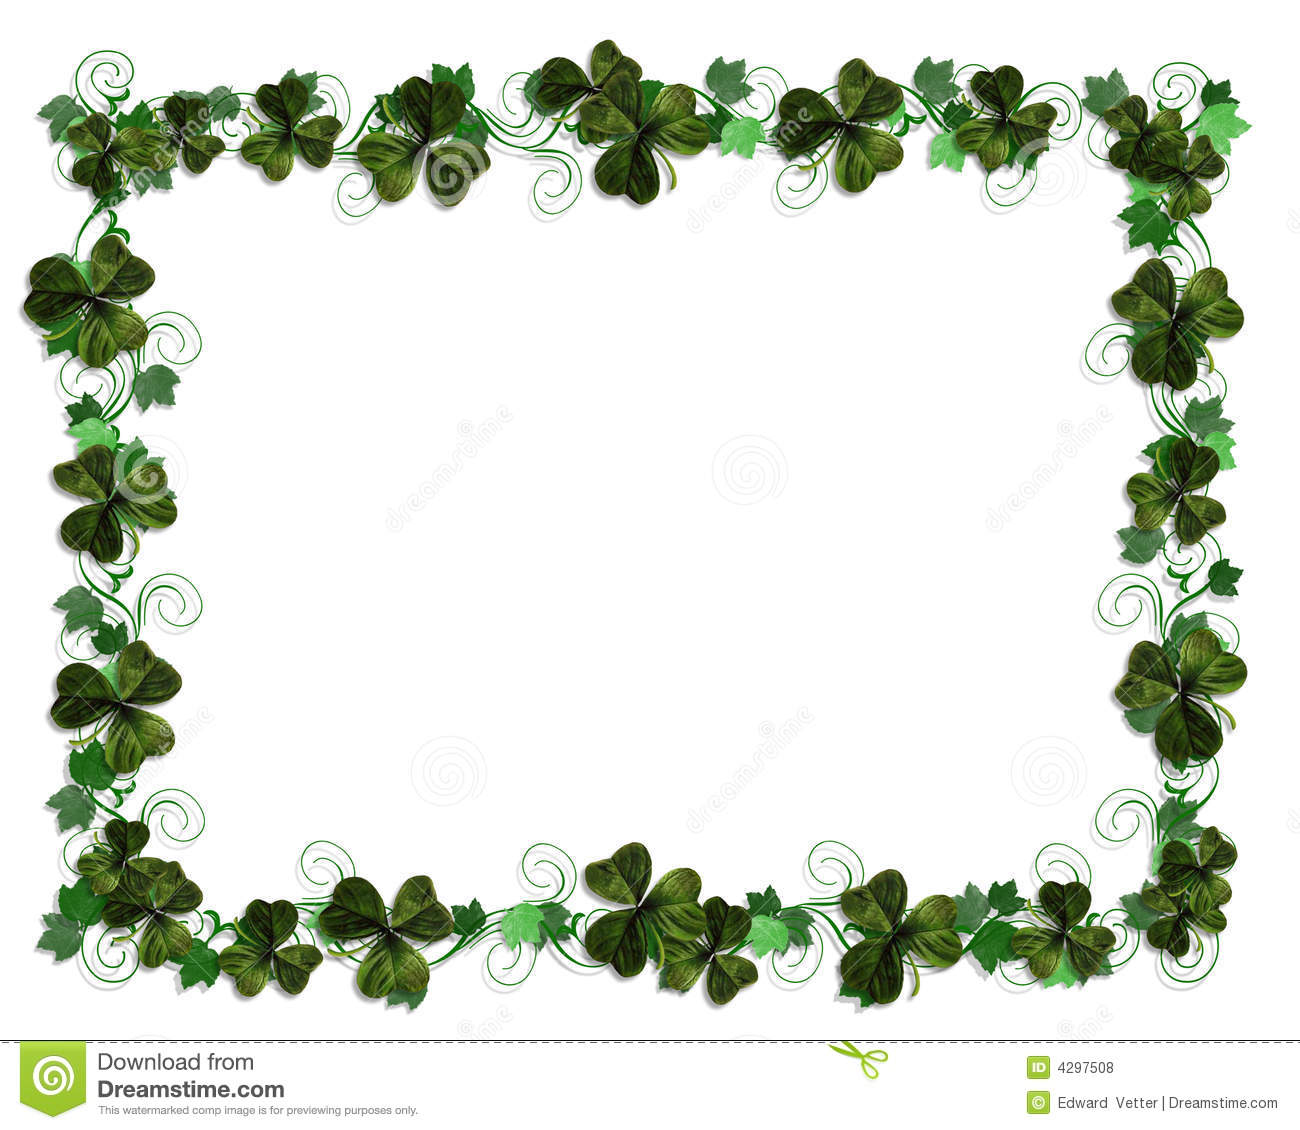 Irish borders clipart graphic freeuse stock Free Irish Border Cliparts, Download Free Clip Art, Free ... graphic freeuse stock